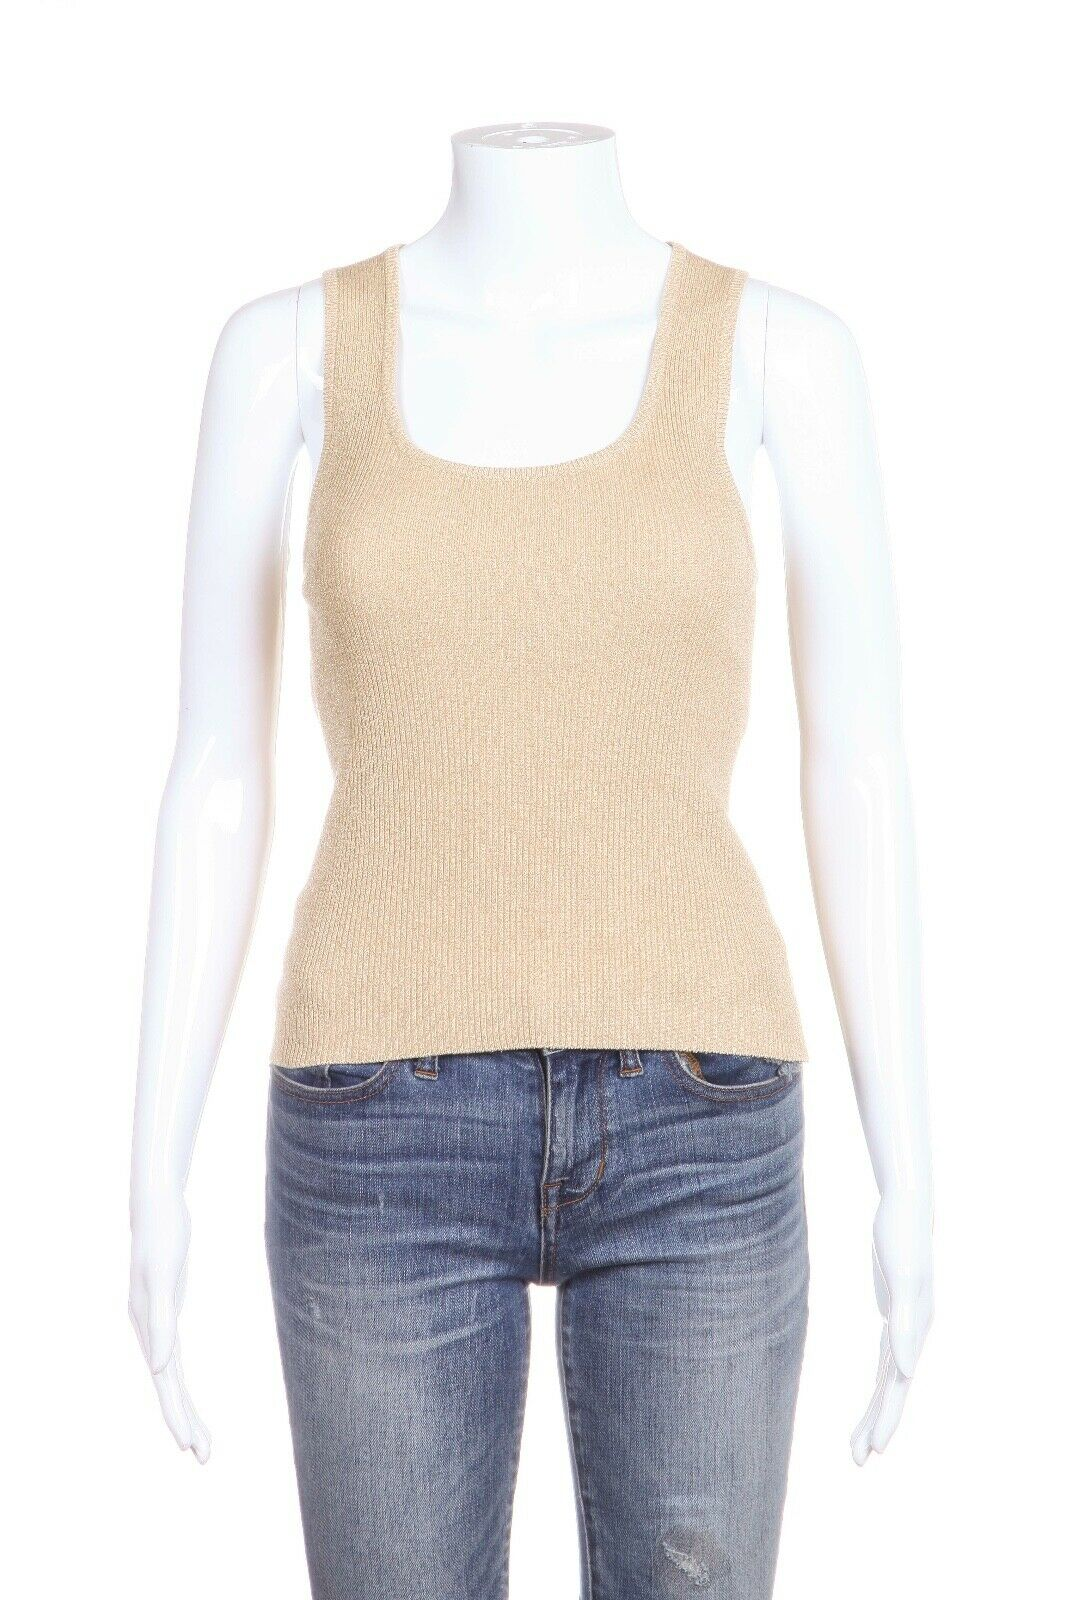 CELINE Sleeveless Metallic Knit Top Size M